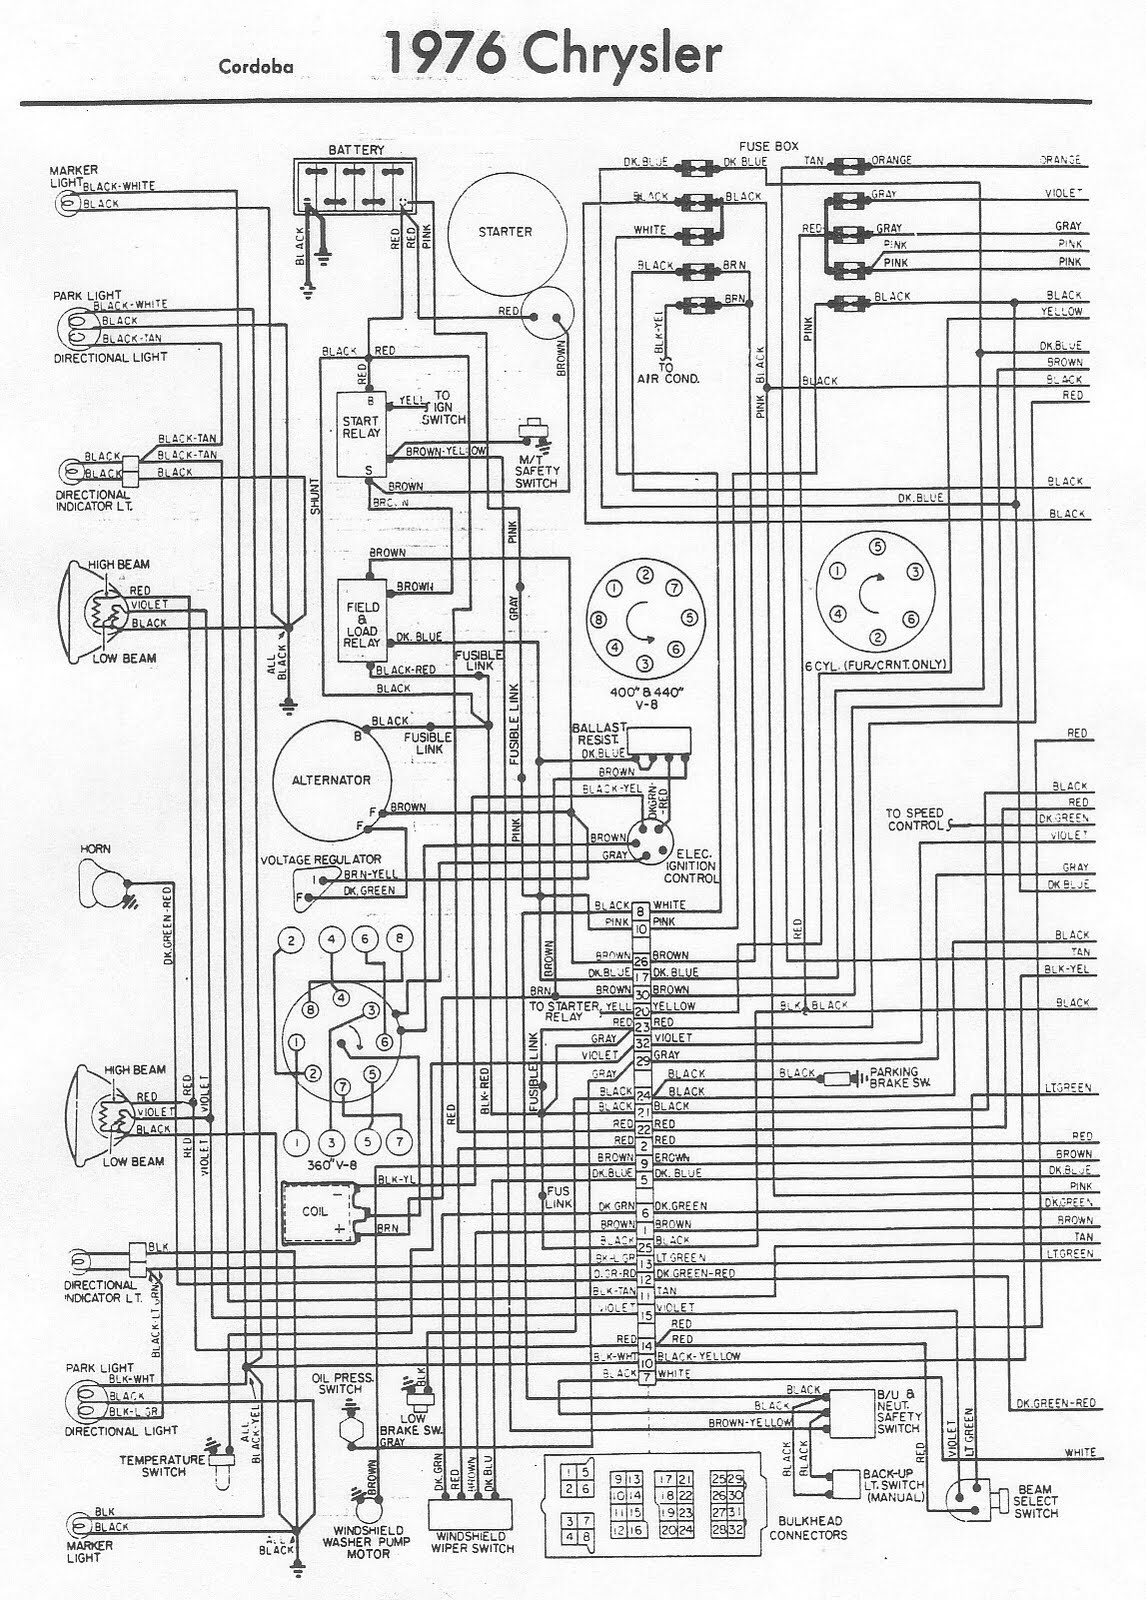 1976 Corvette Dash Wiring Diagram Painless 10202 Free Auto